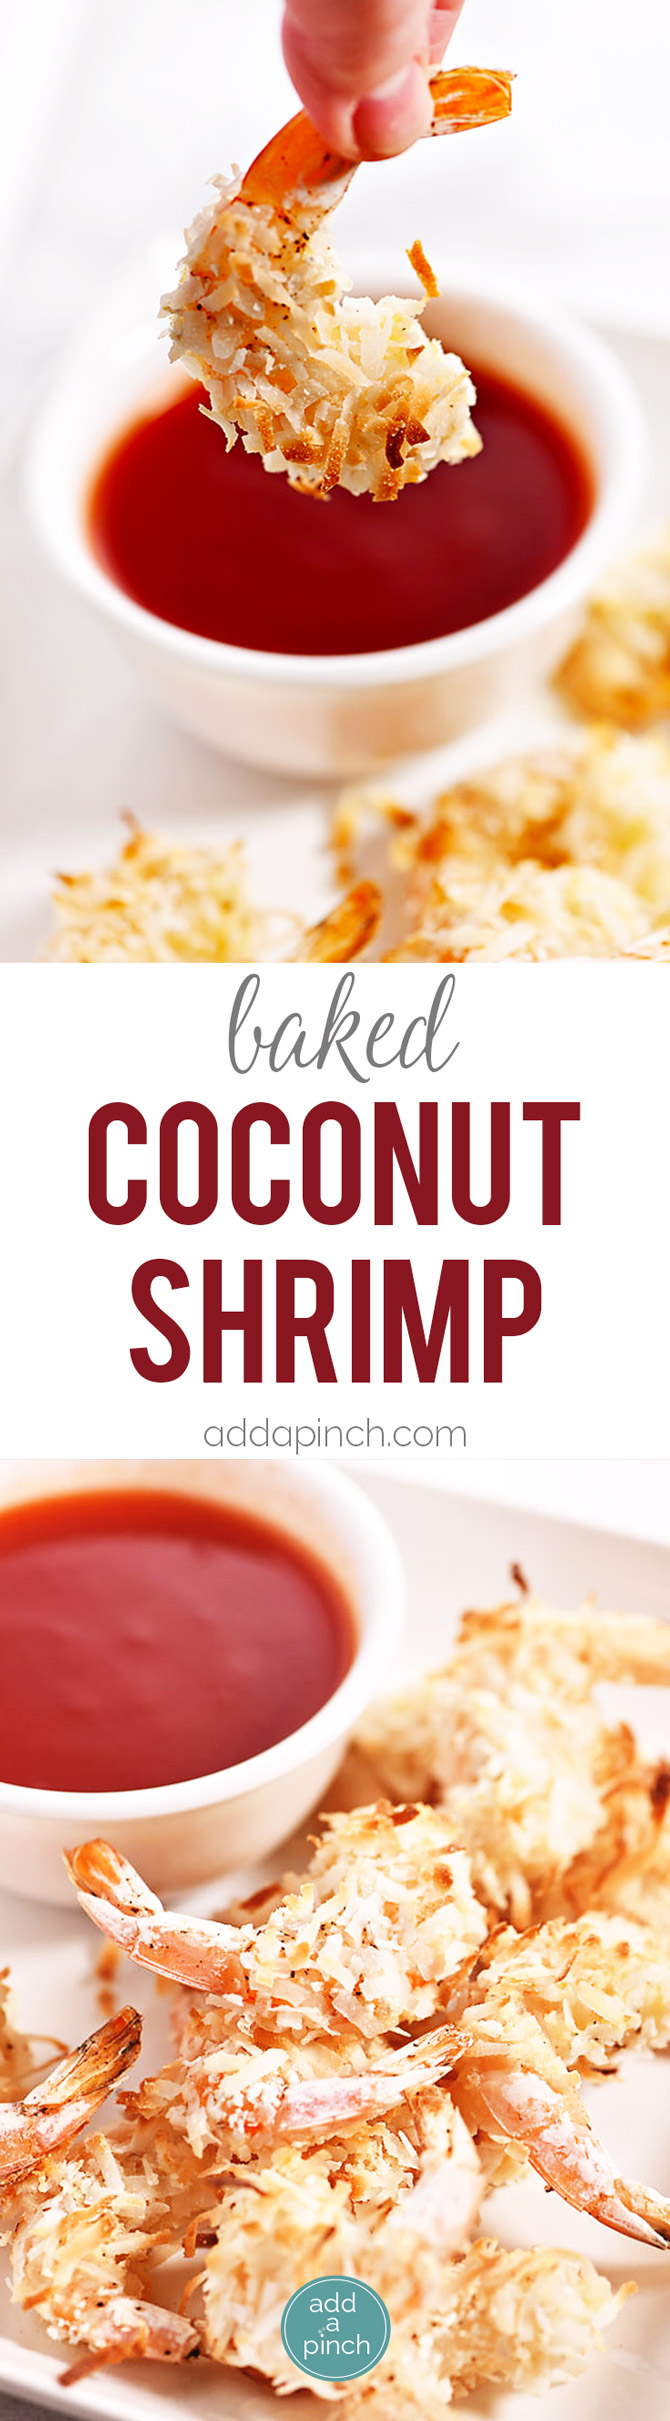 Baked Coconut Shrimp - Coconut shrimp is always a restaurant favorite, but this simple recipe couldn't be easier for delicious baked coconut shrimp at home! // addapinch.com